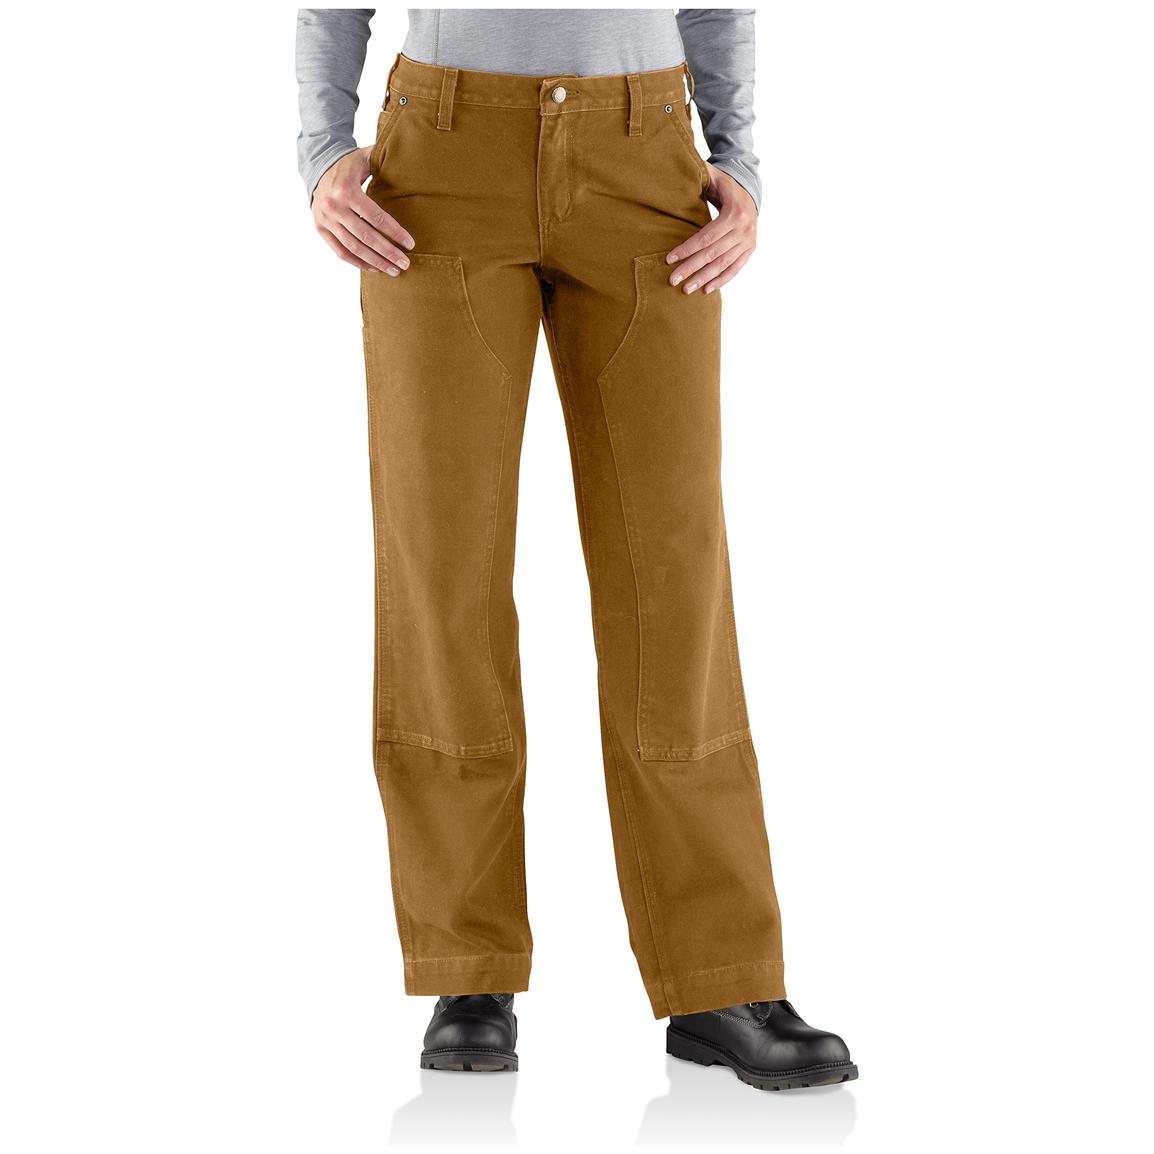 carhartt pants womens photo - 1